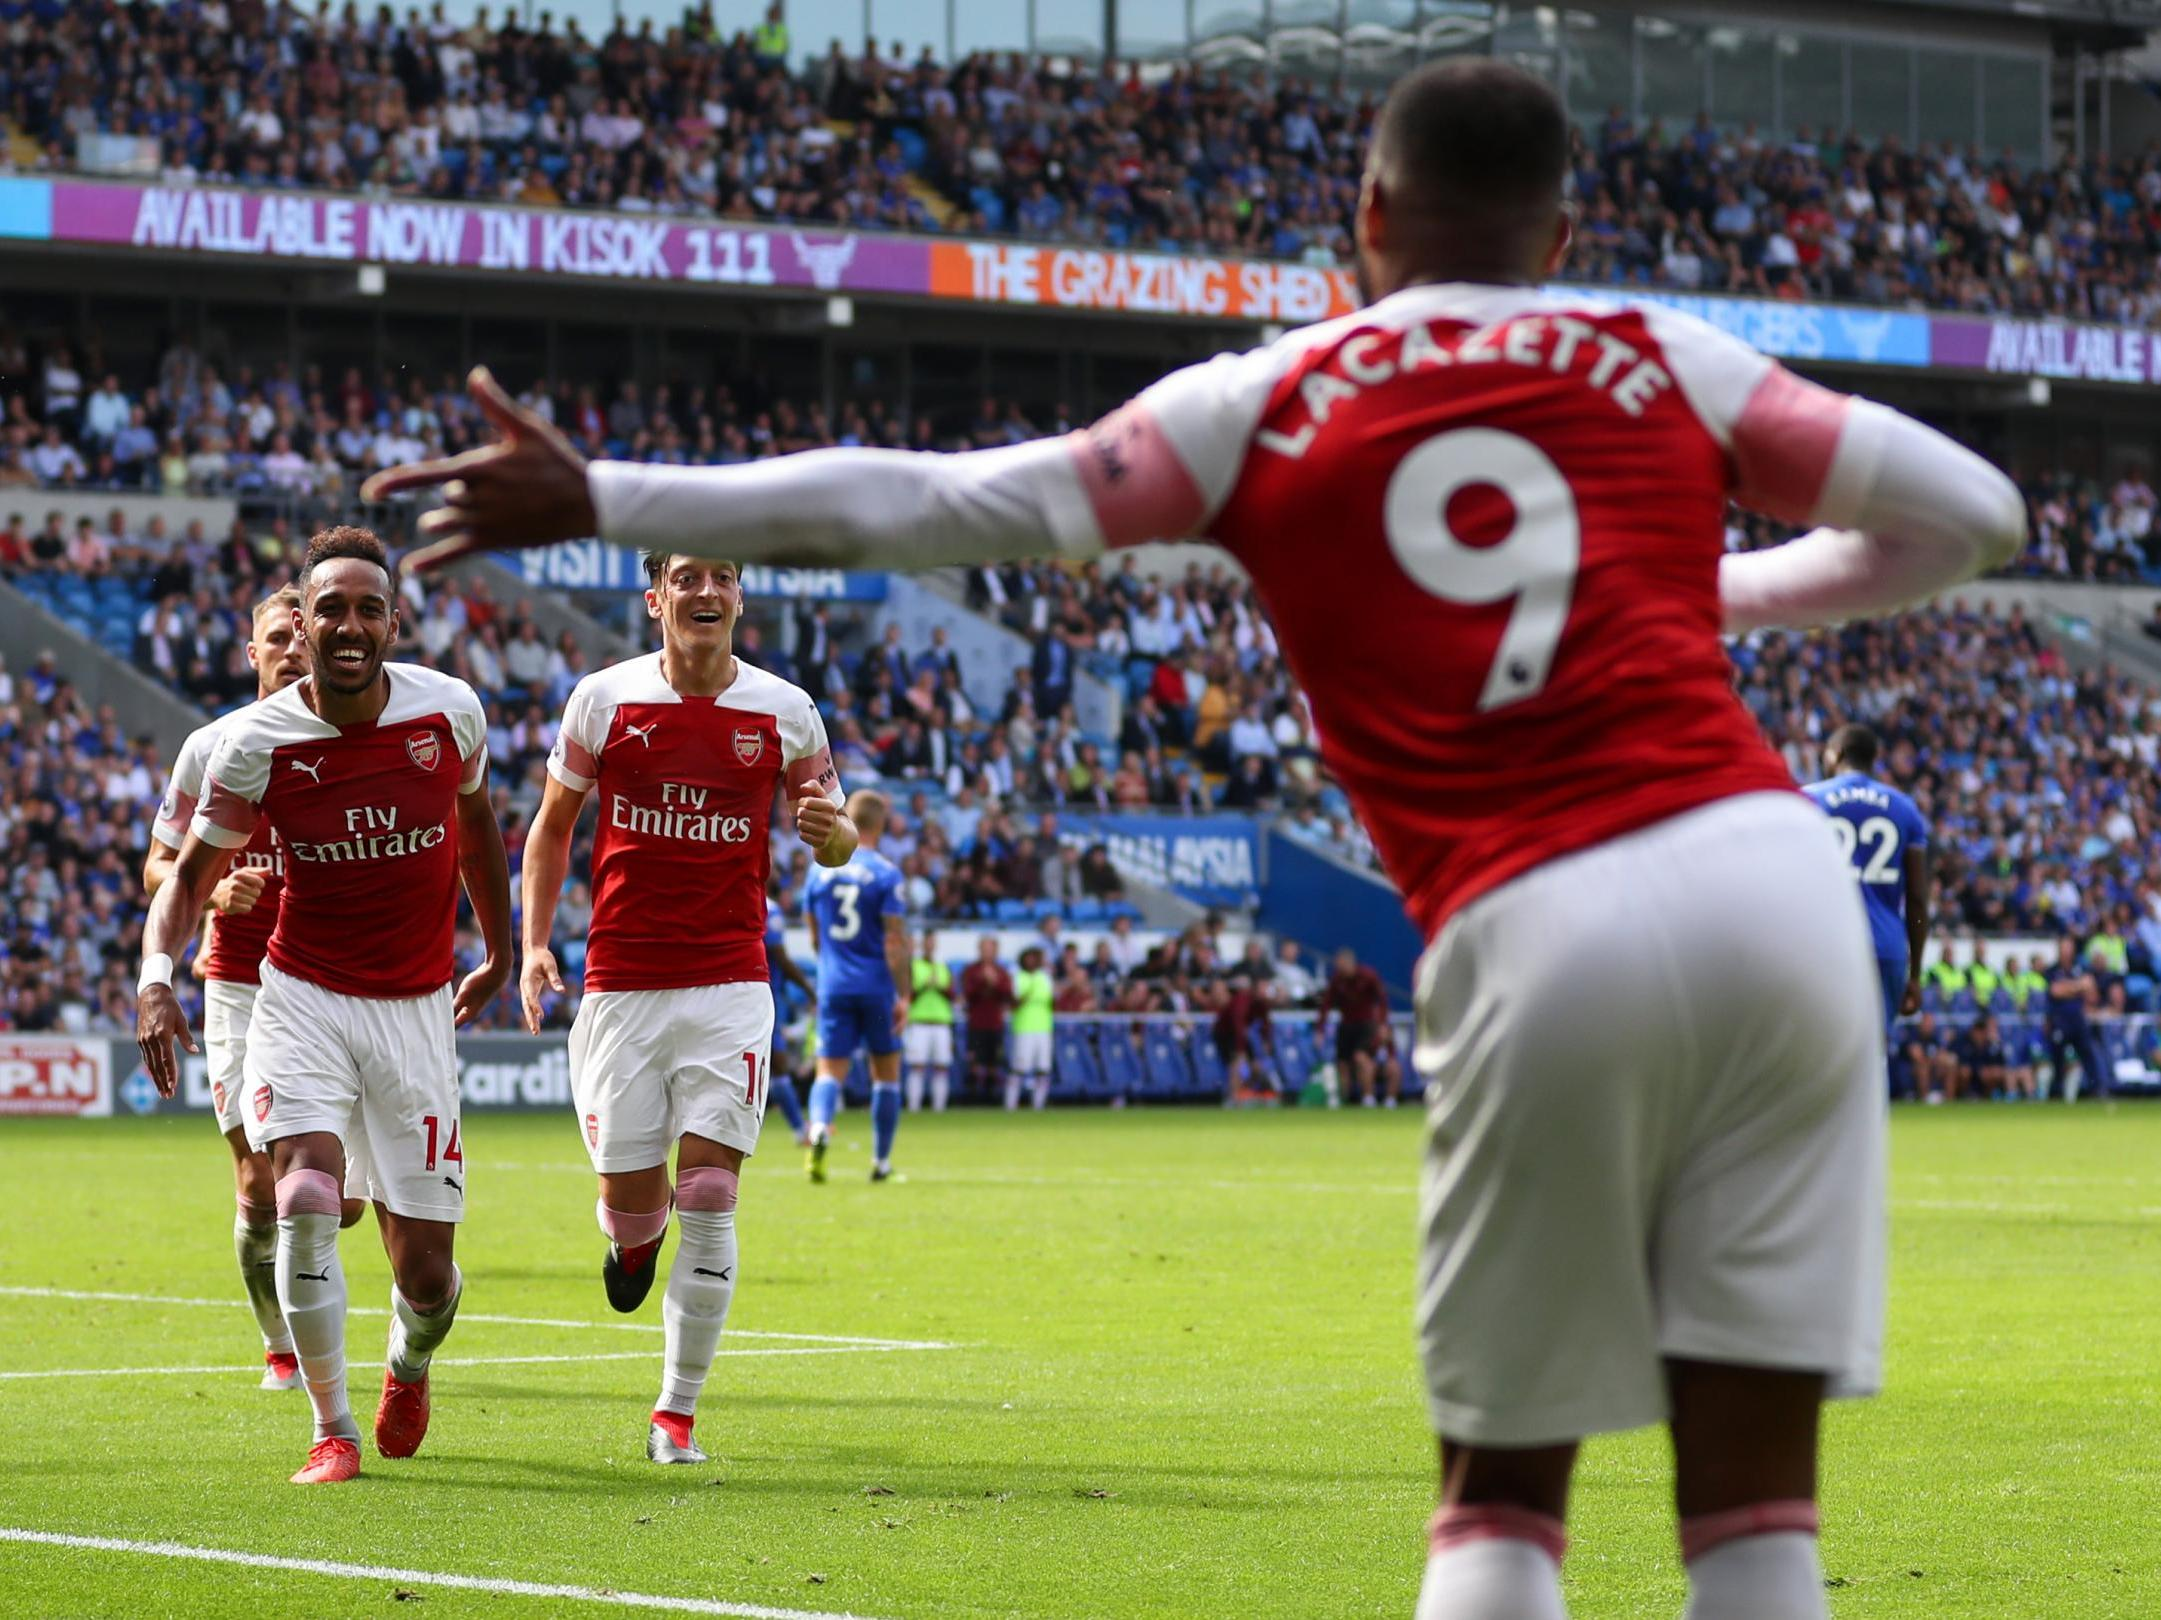 Newcastle vs Arsenal: What time does it start, where can I watch it and what are the odds?